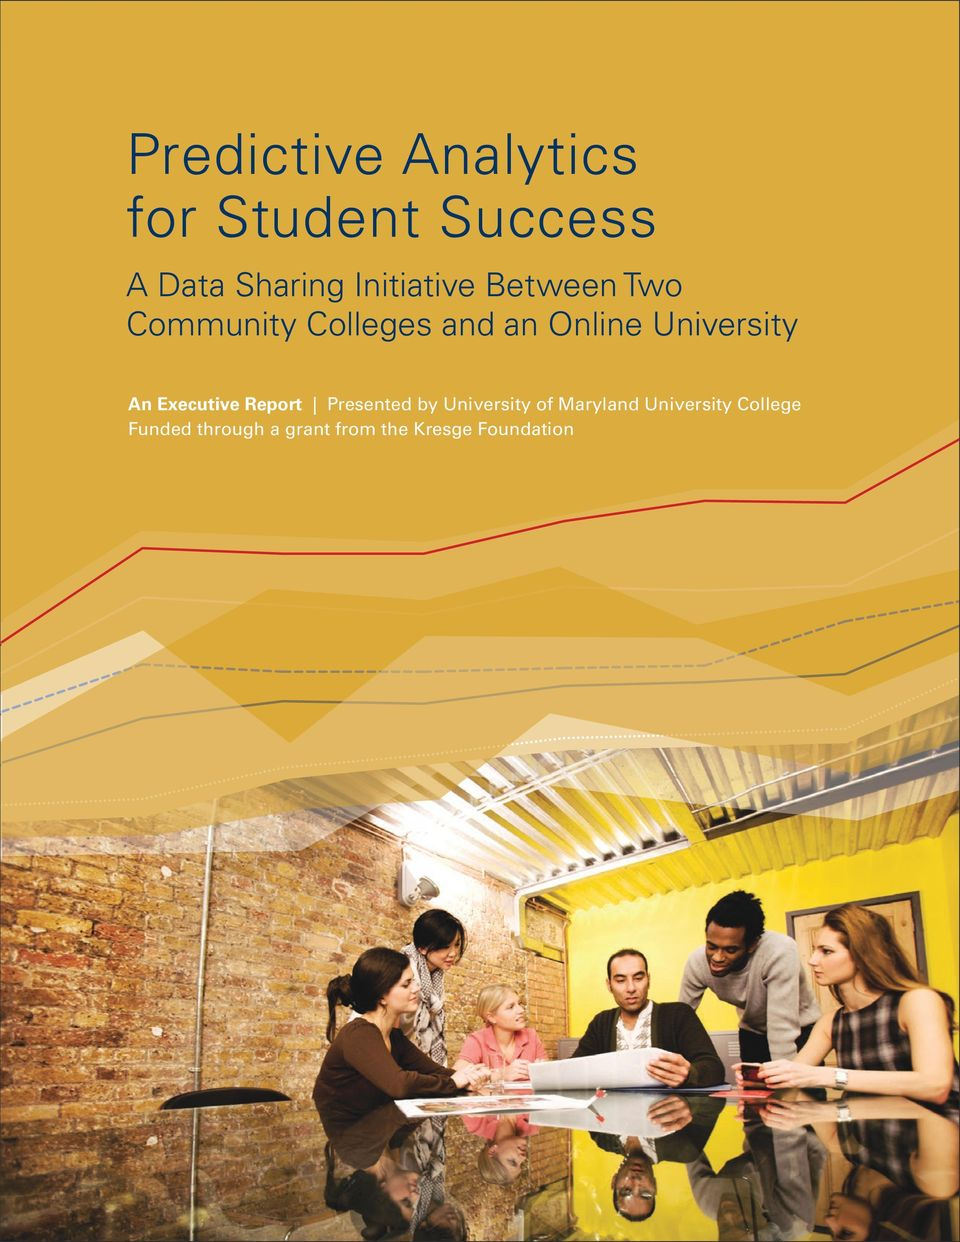 University An Executive Report Presented by University of